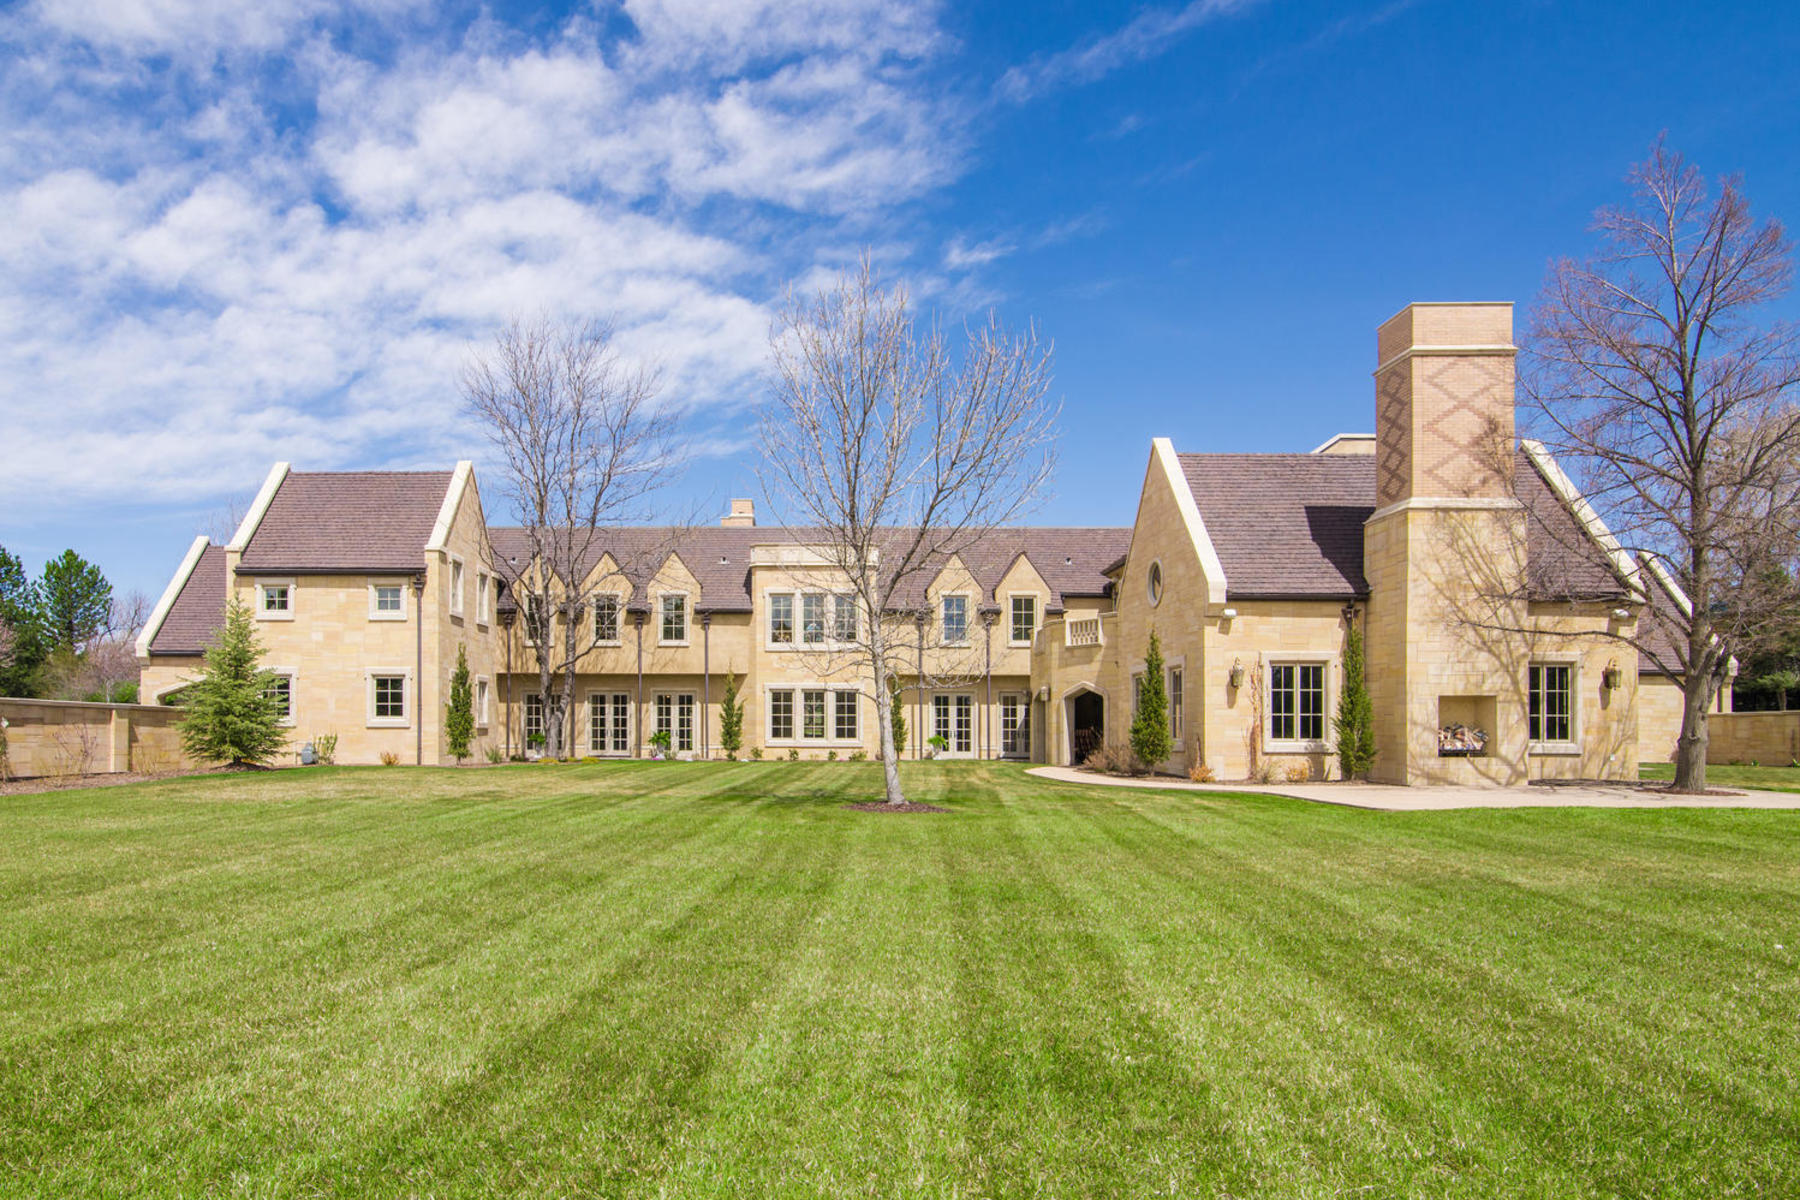 Casa Unifamiliar por un Venta en This English manor home is nestled on 2.5 serene acres in Cherry Hills Village! 1 Tenaya Ln Cherry Hills Village, Colorado 80113 Estados Unidos